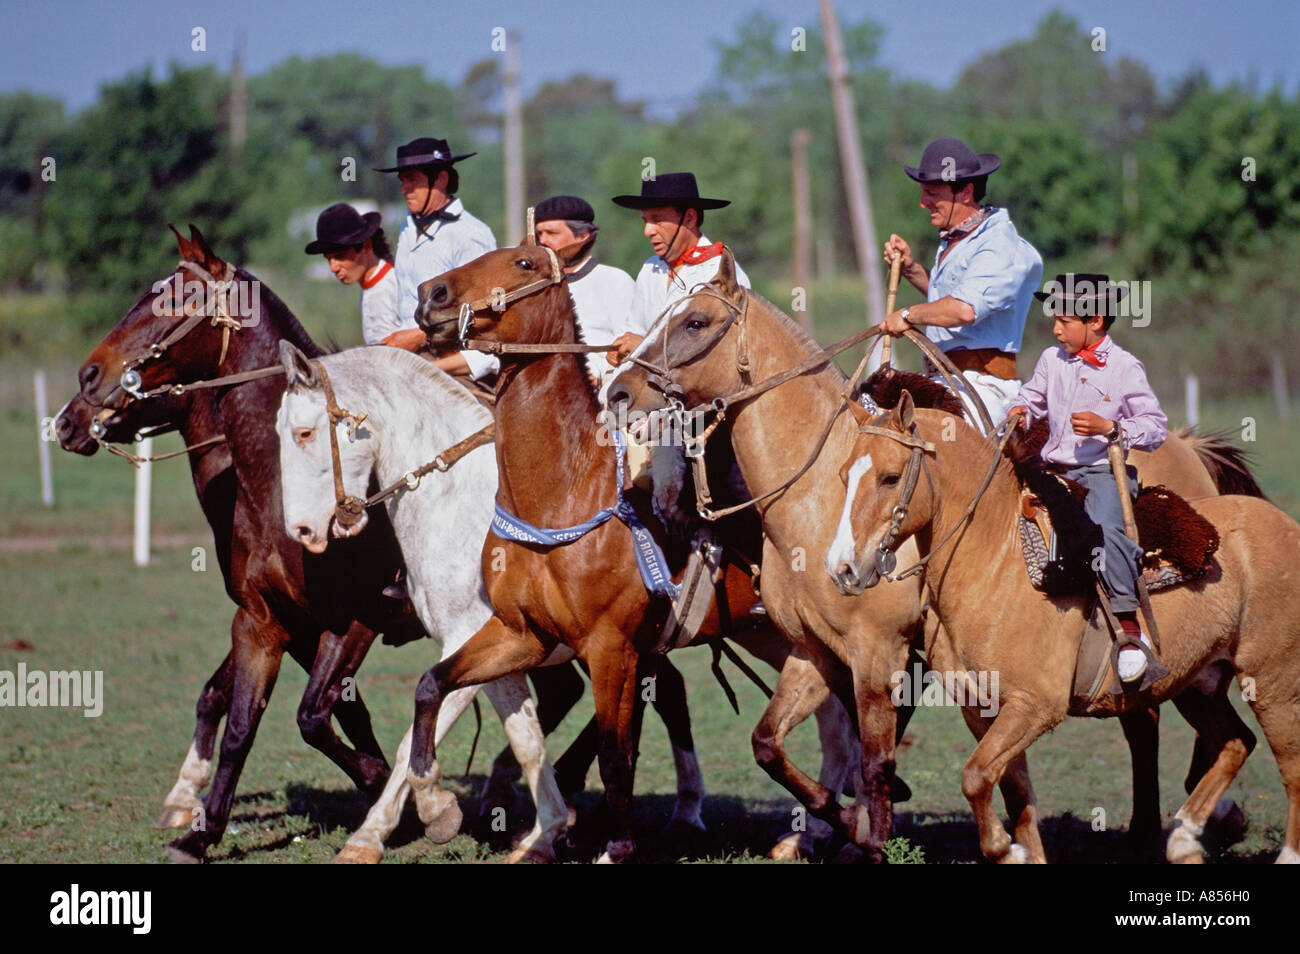 South America. Argentina. Gauchos riding horses. - Stock Image